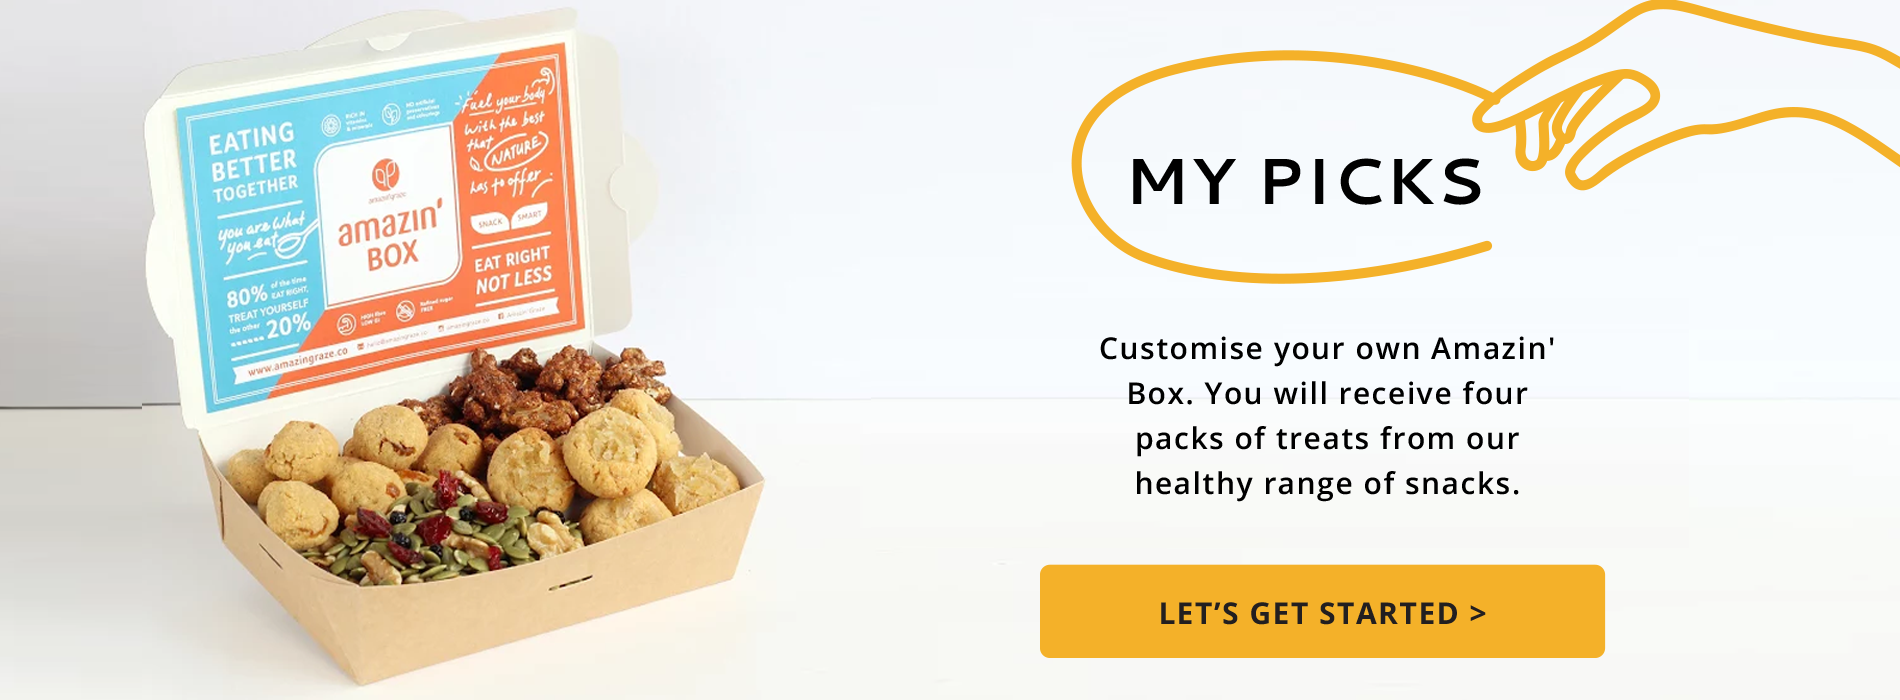 My picks, customize your own Amazin'Box. You will receive four packs or treats from our healthy range of snacks, written next to a box full of healthy granolas and nuts